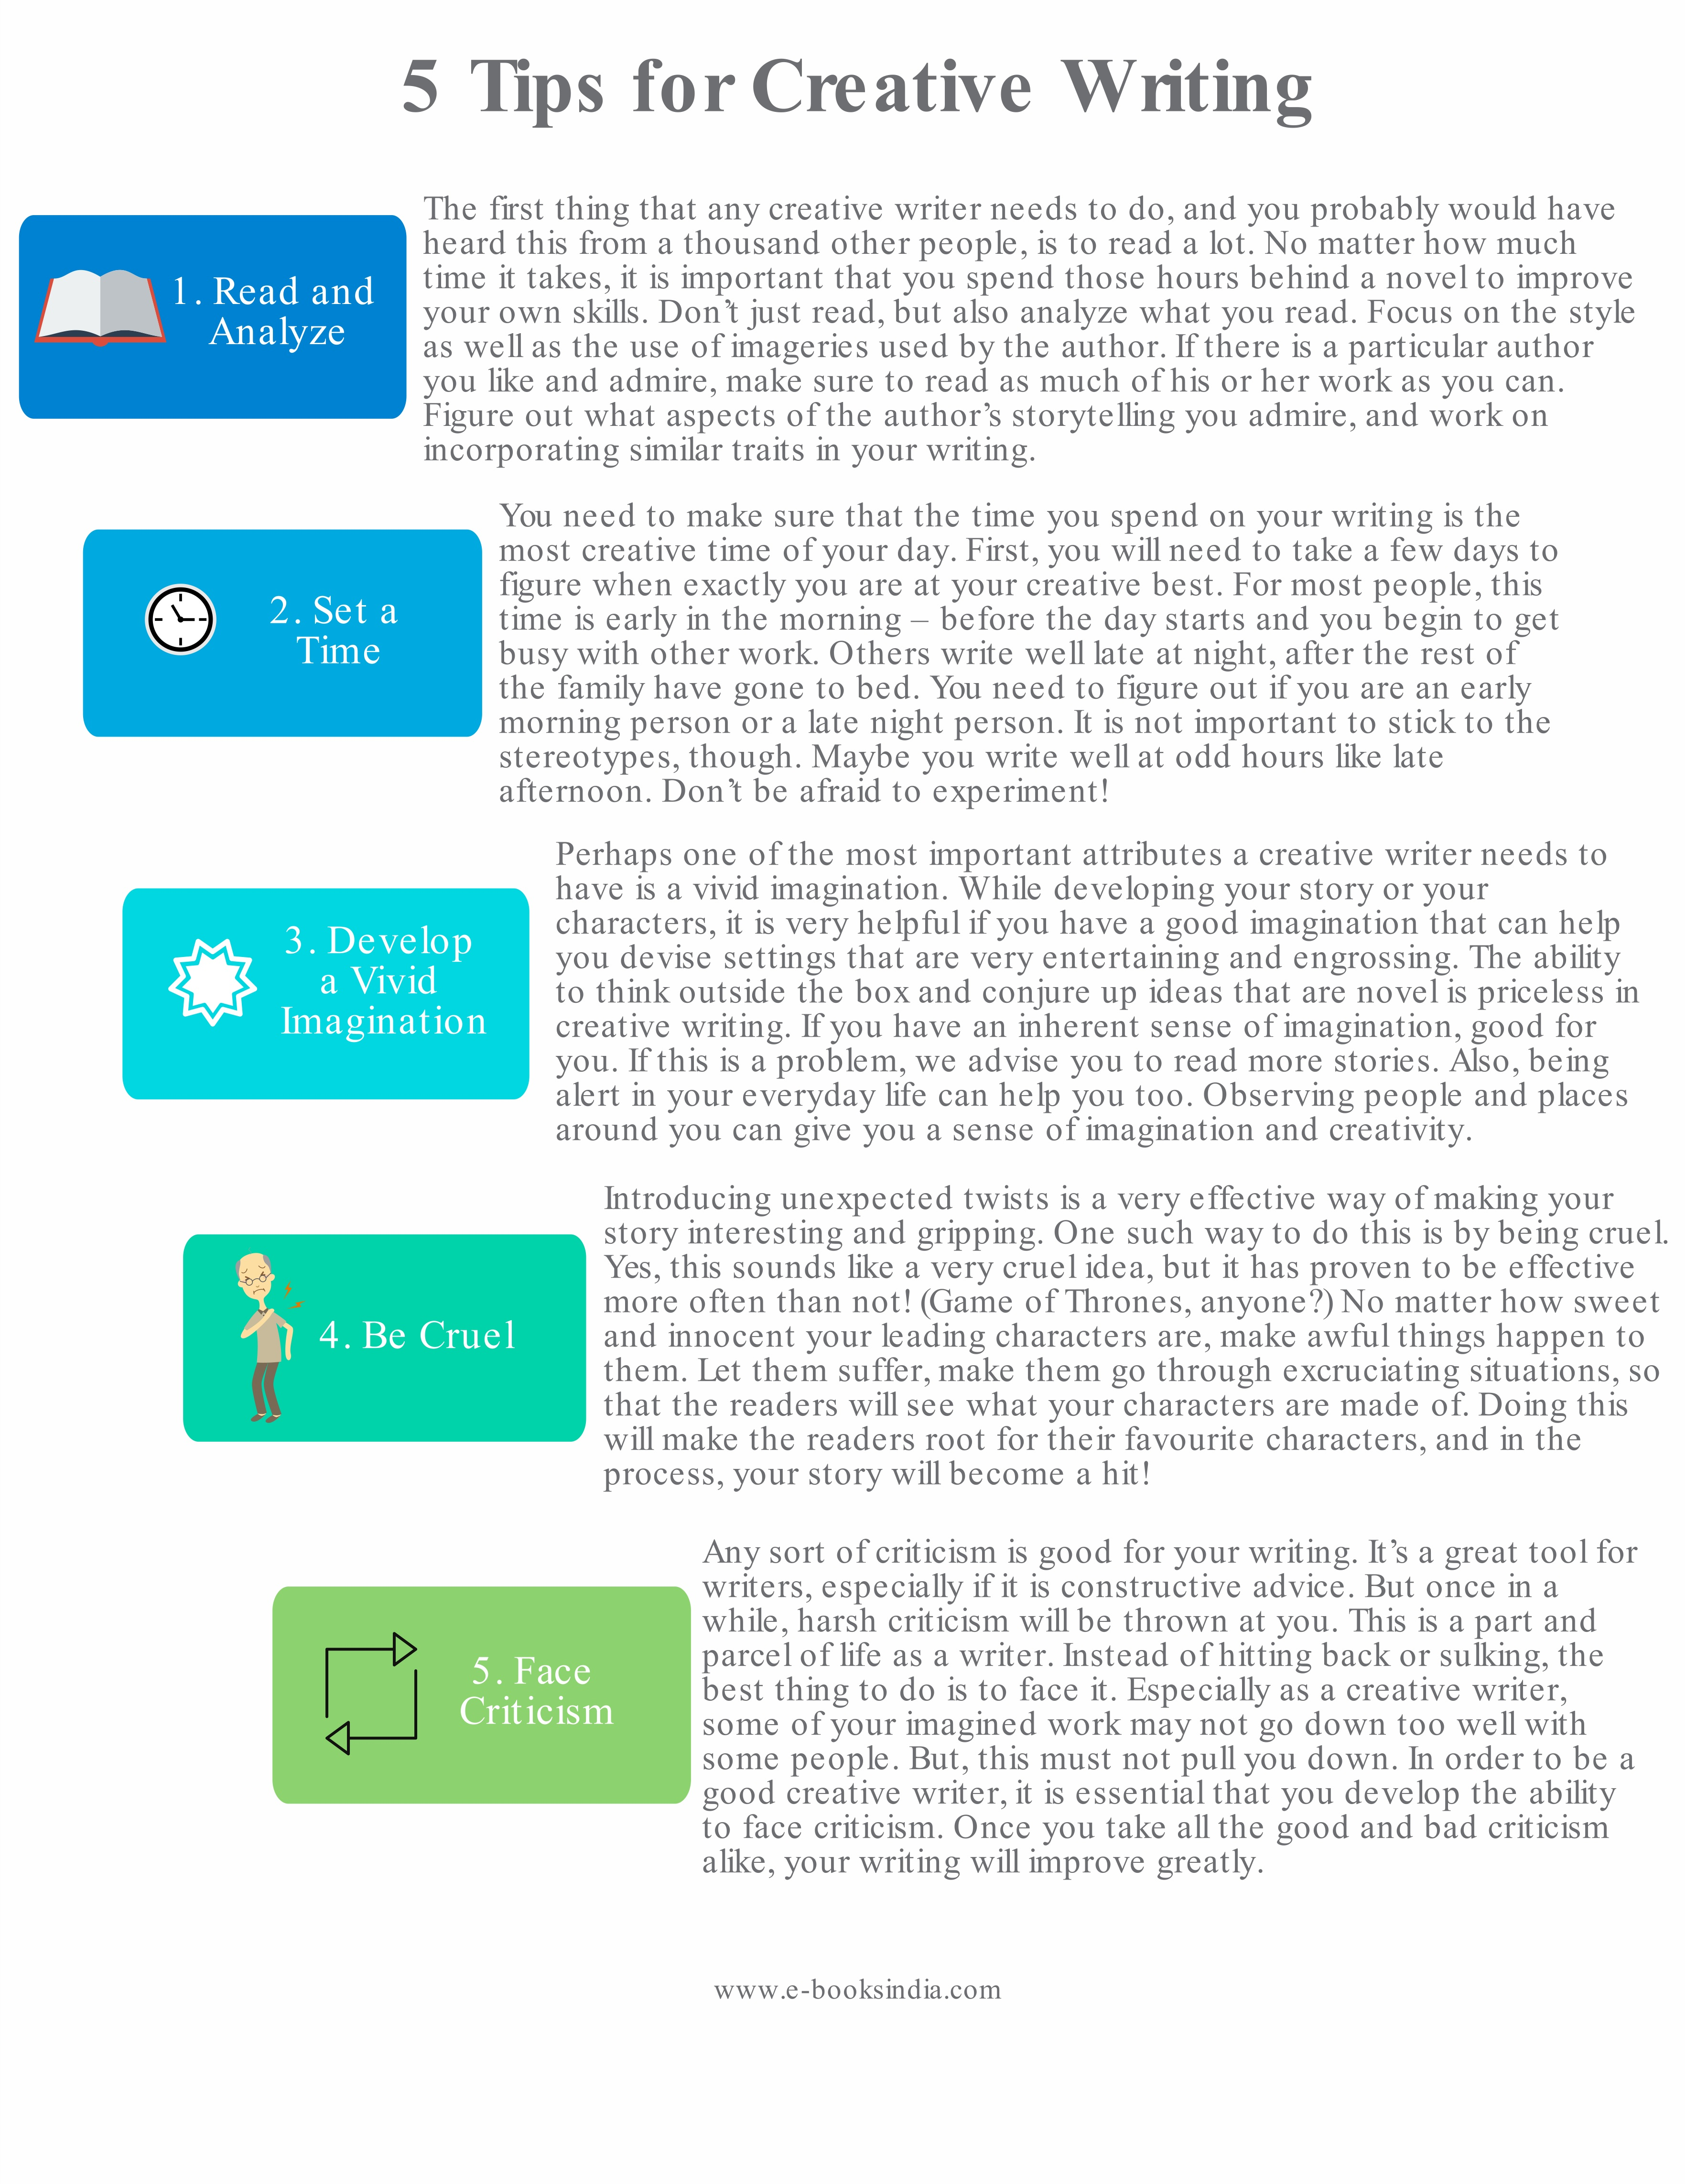 5 Tips For Creative Writing Infographic